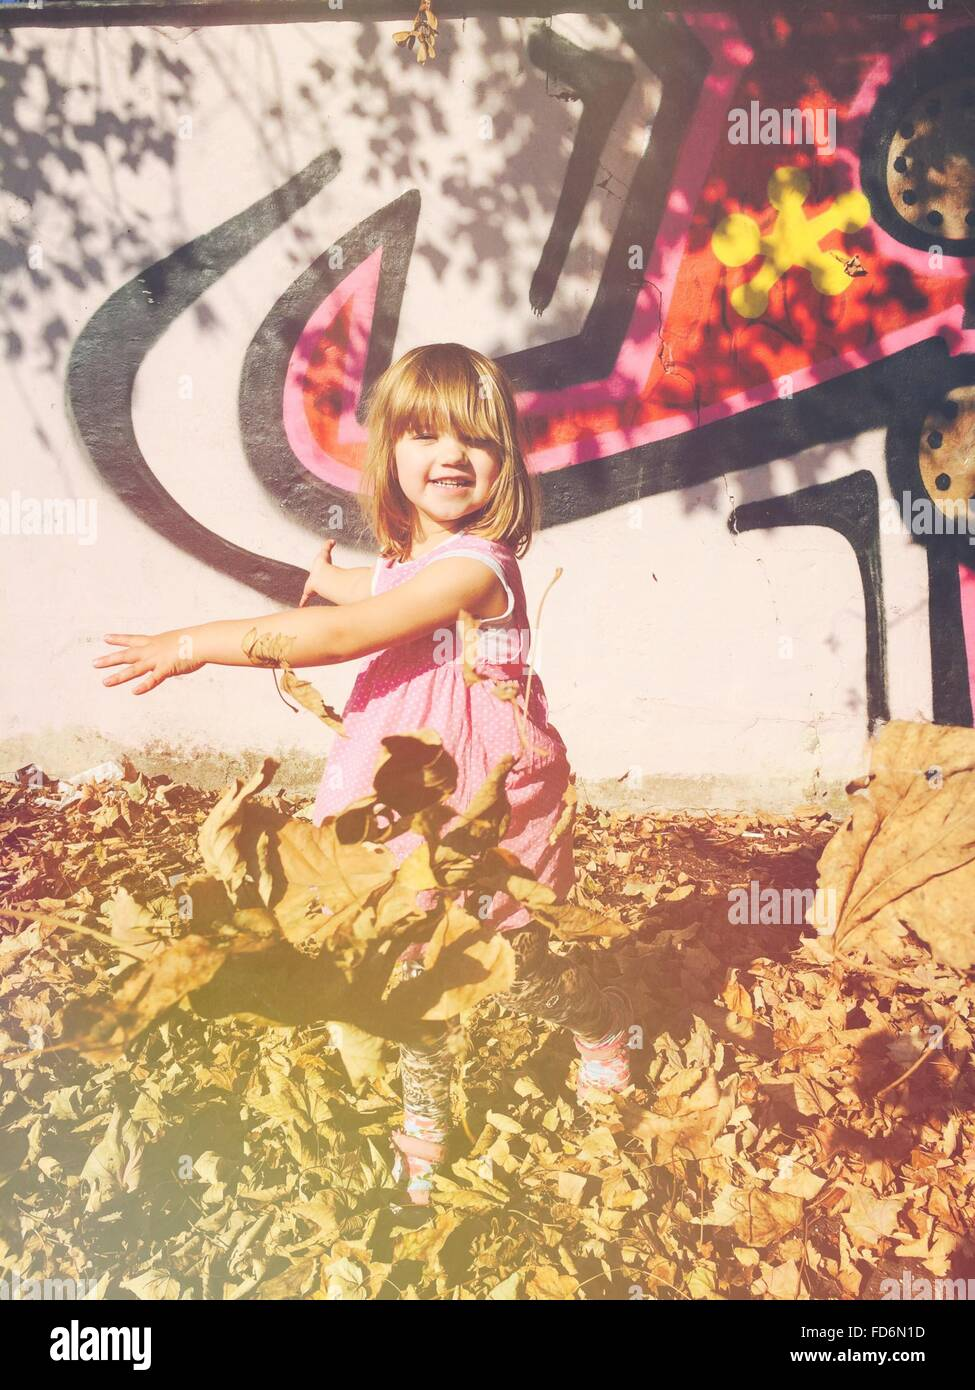 Cute Girl Playing With Dry Leaves Against Wall - Stock Image